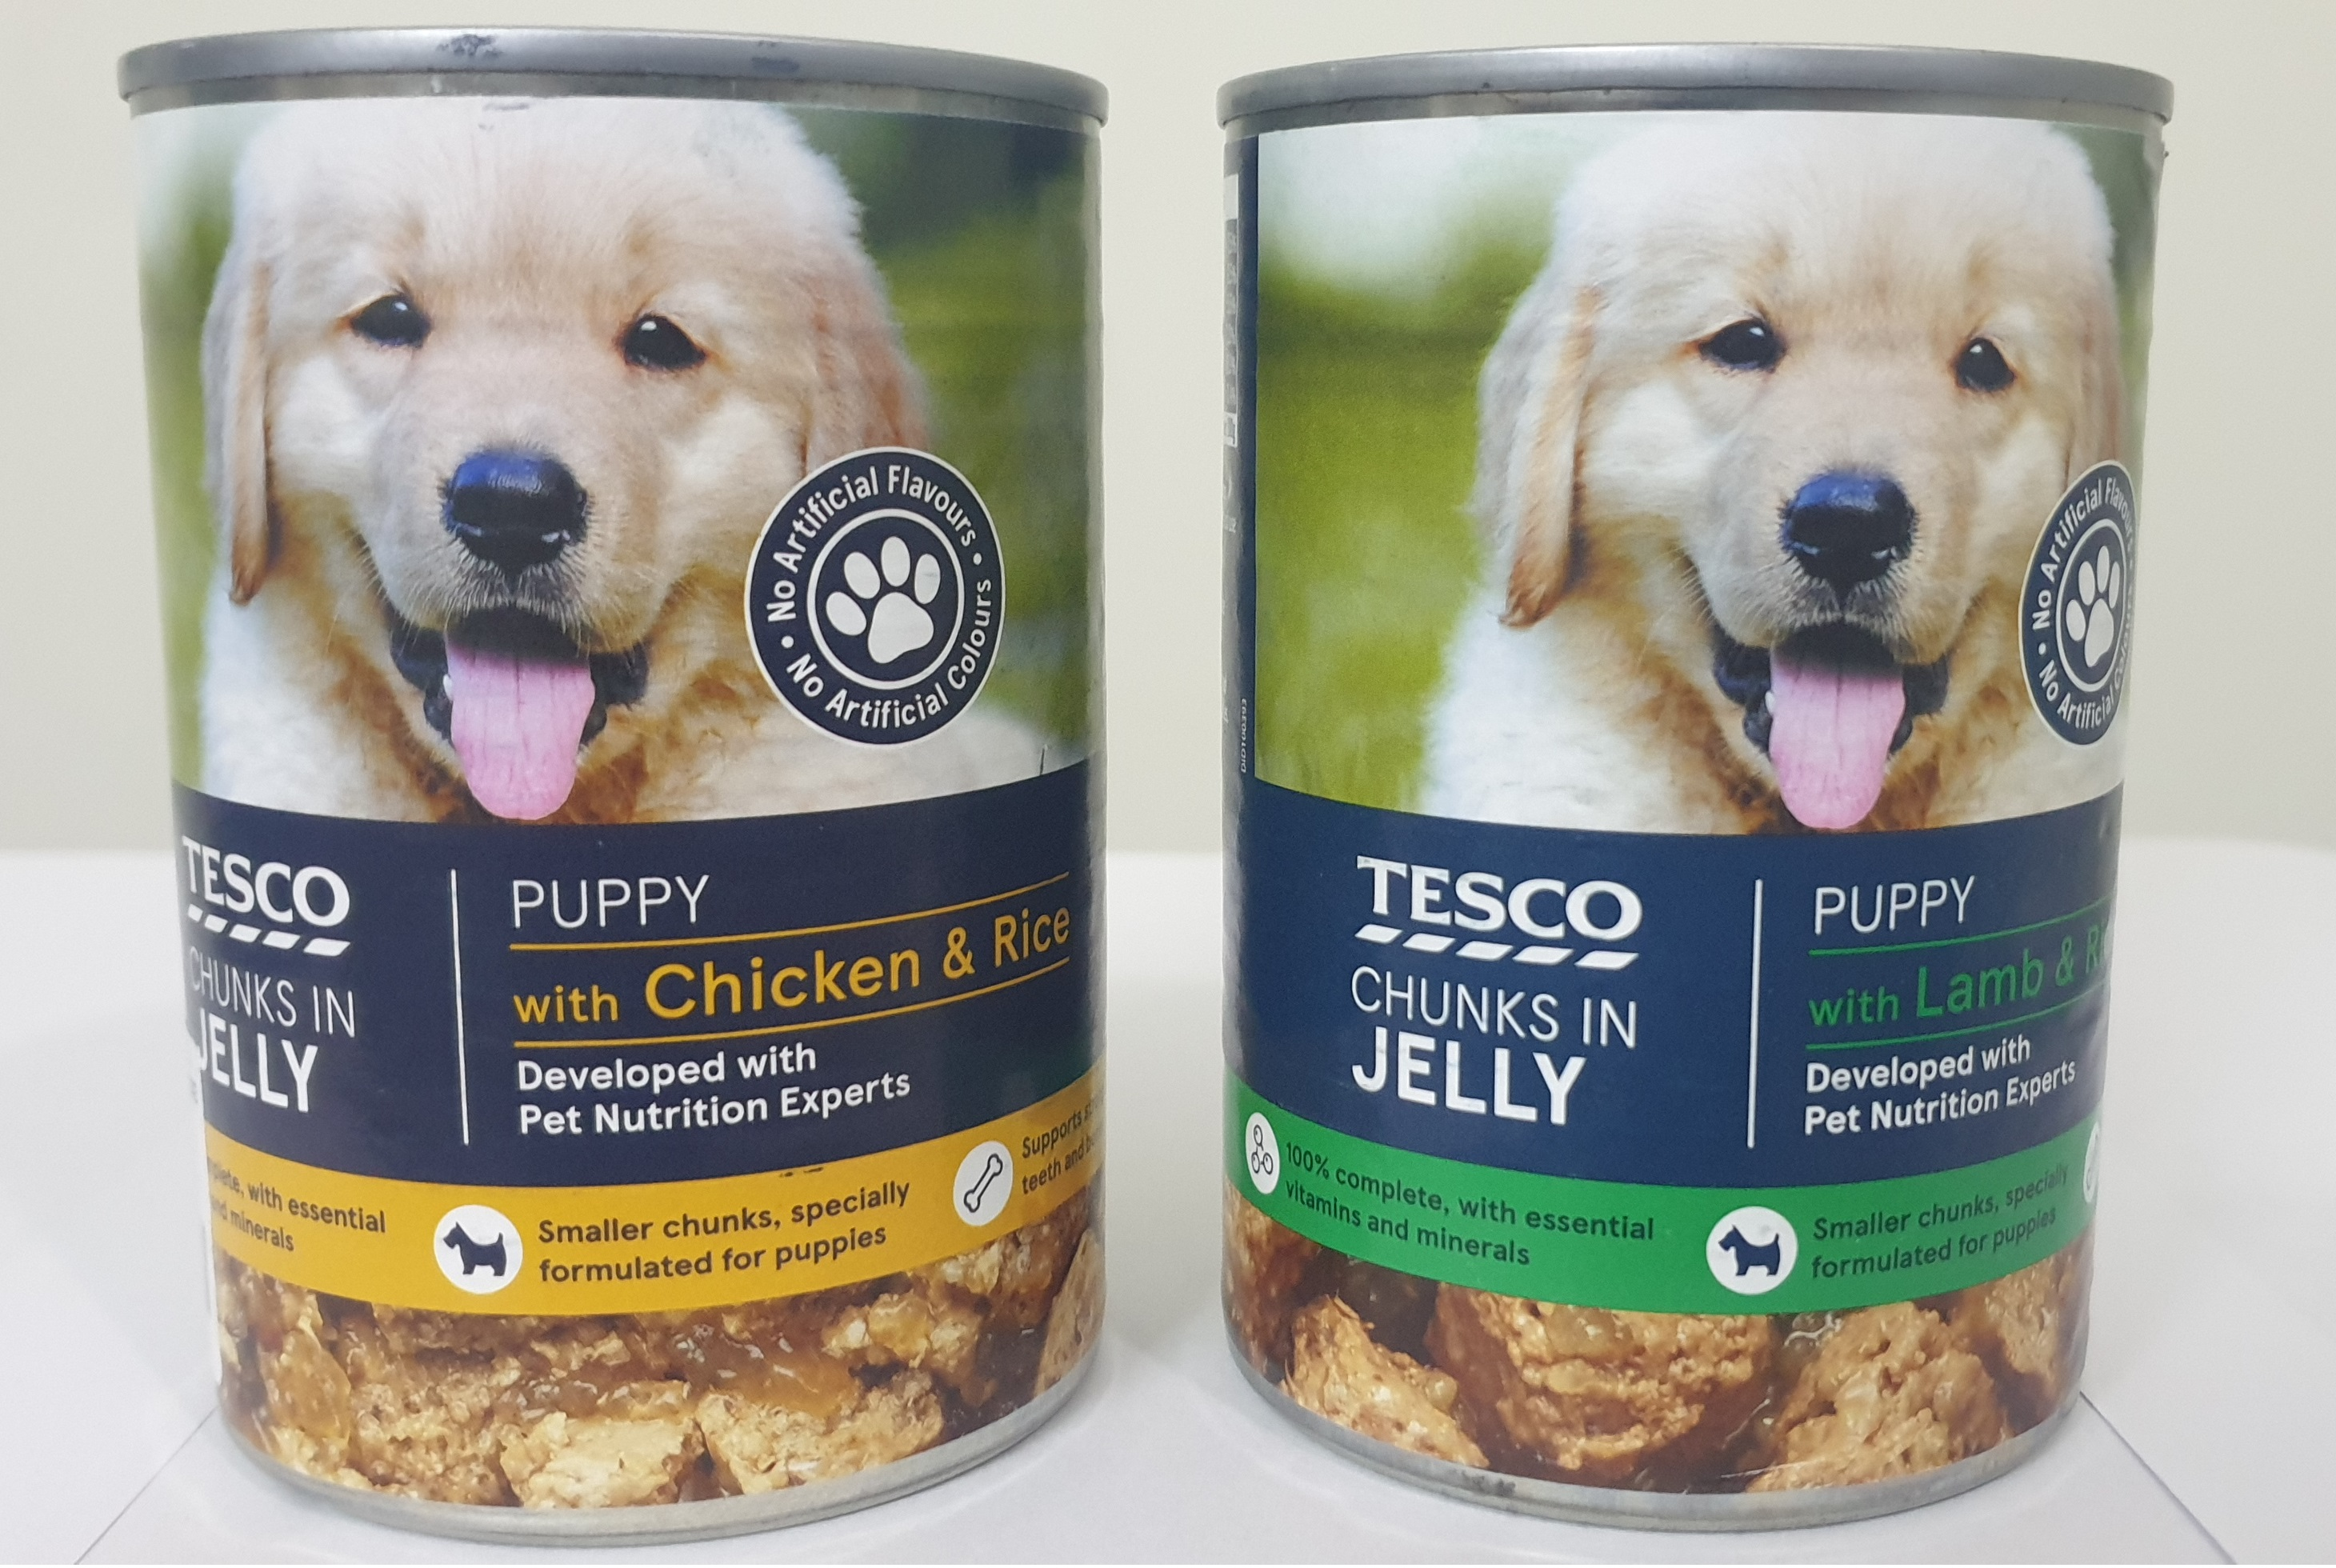 Tesco Chunks In Jelly For Puppy In Chicken / Beef / Lamb / Lamb & Rice / Beef & Rice 400g - Pet Food - Pet Store - Pet supplies